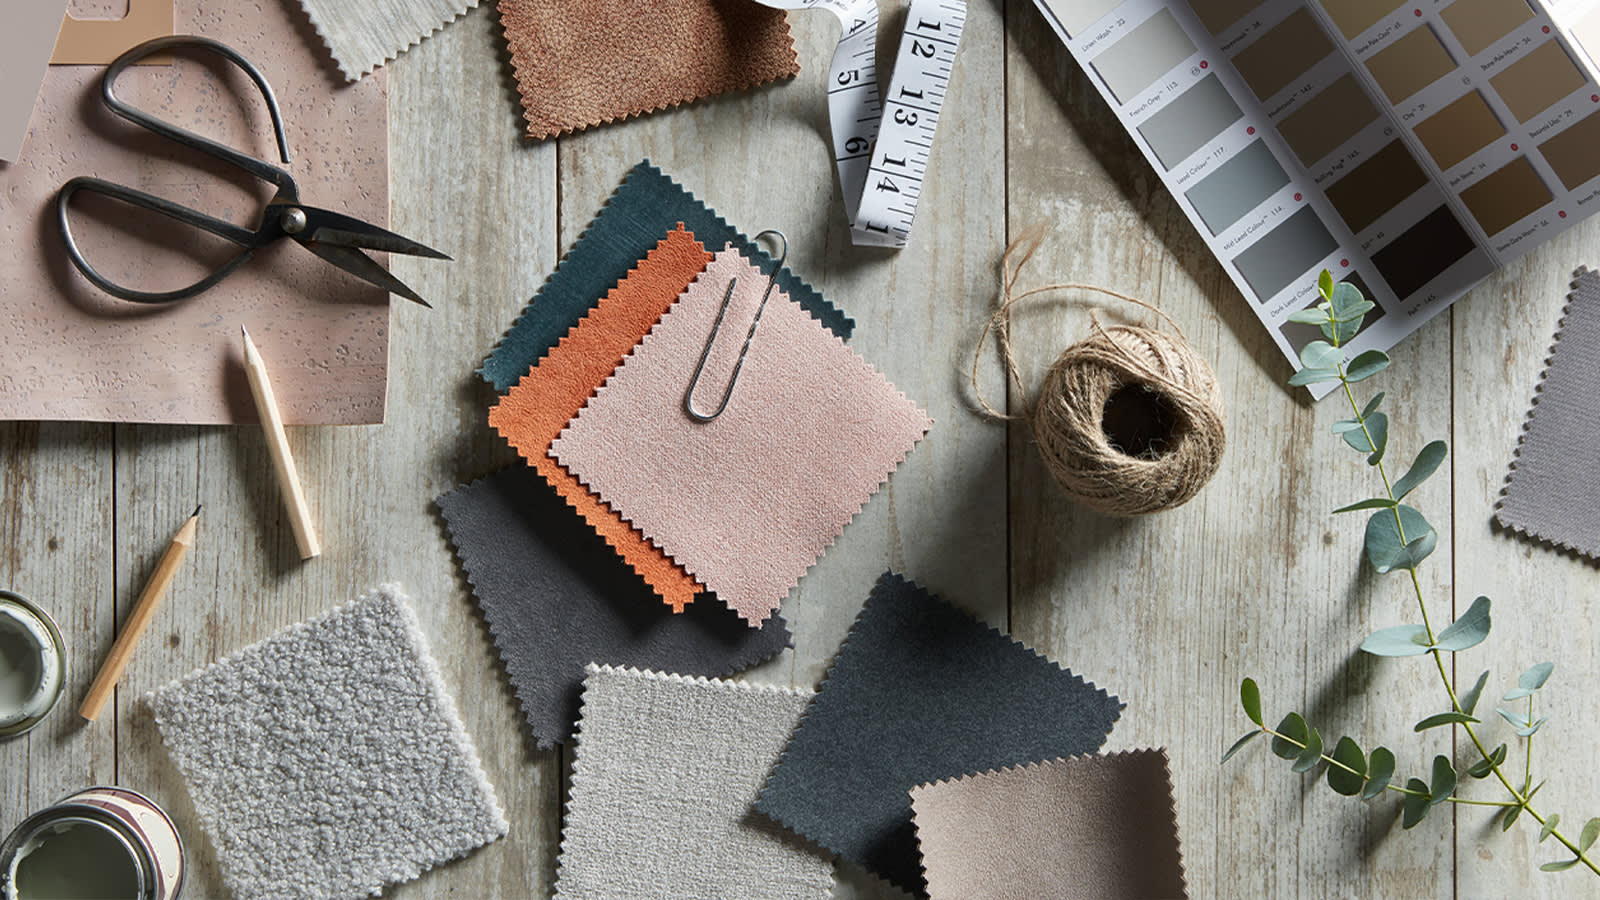 Free fabric swatches for sofas